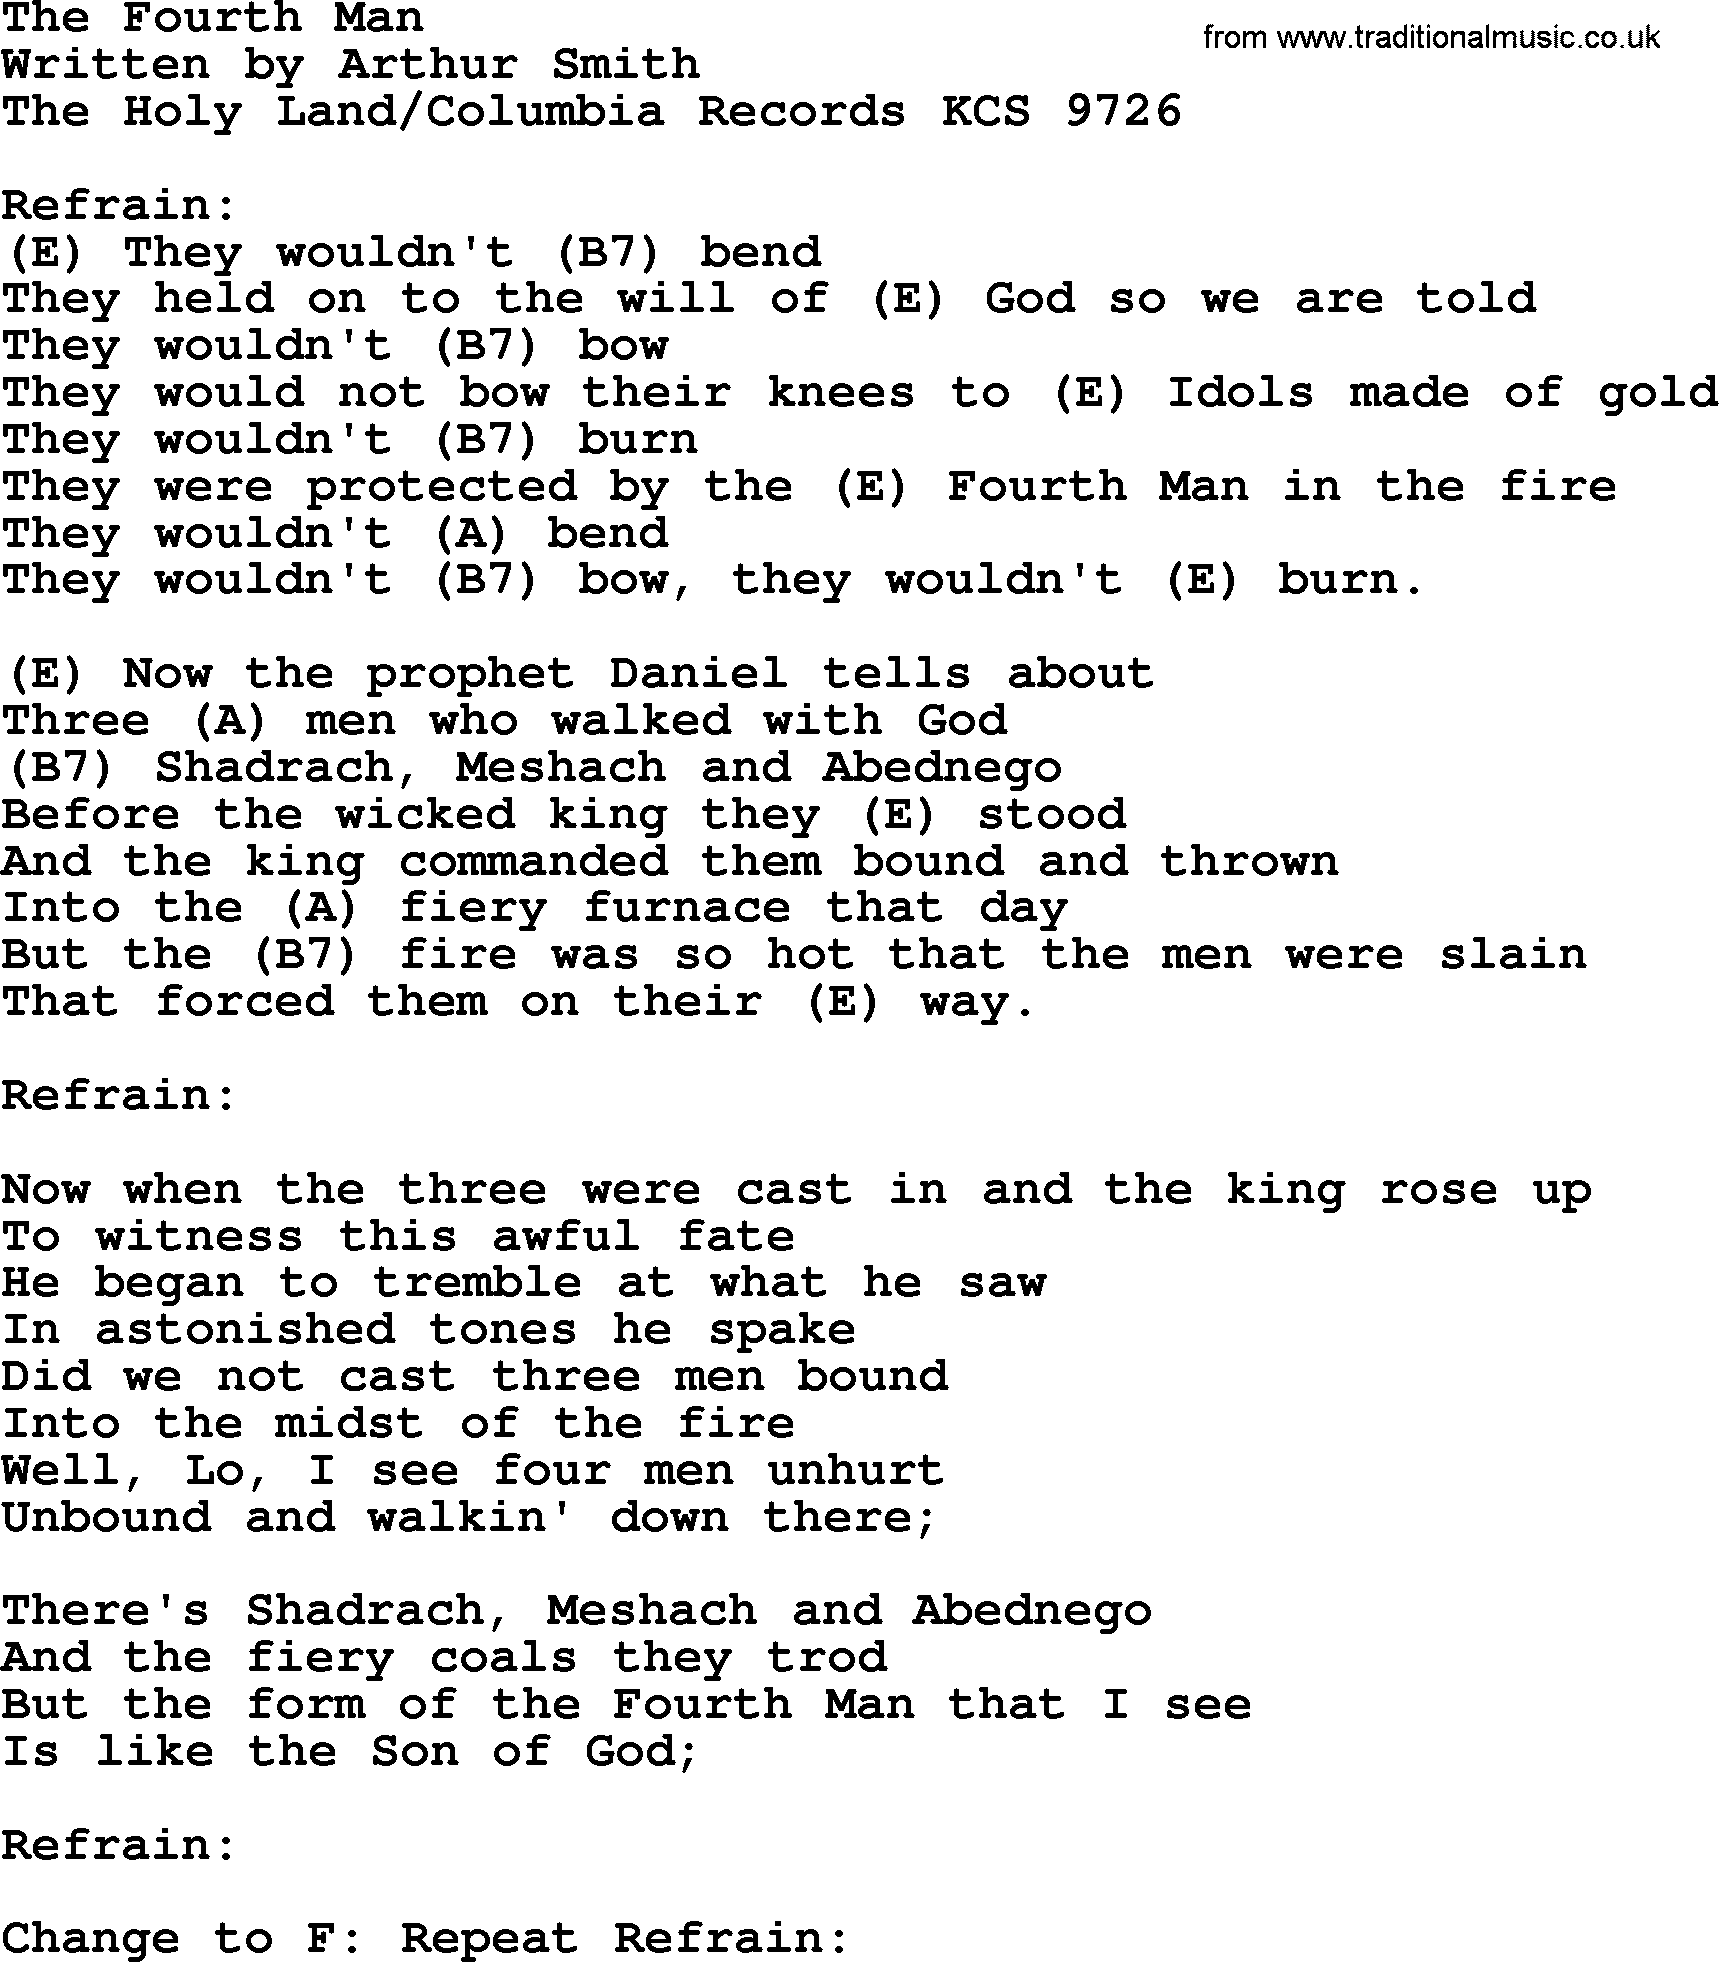 Johnny Cash song: The Fourth Man, lyrics and chords